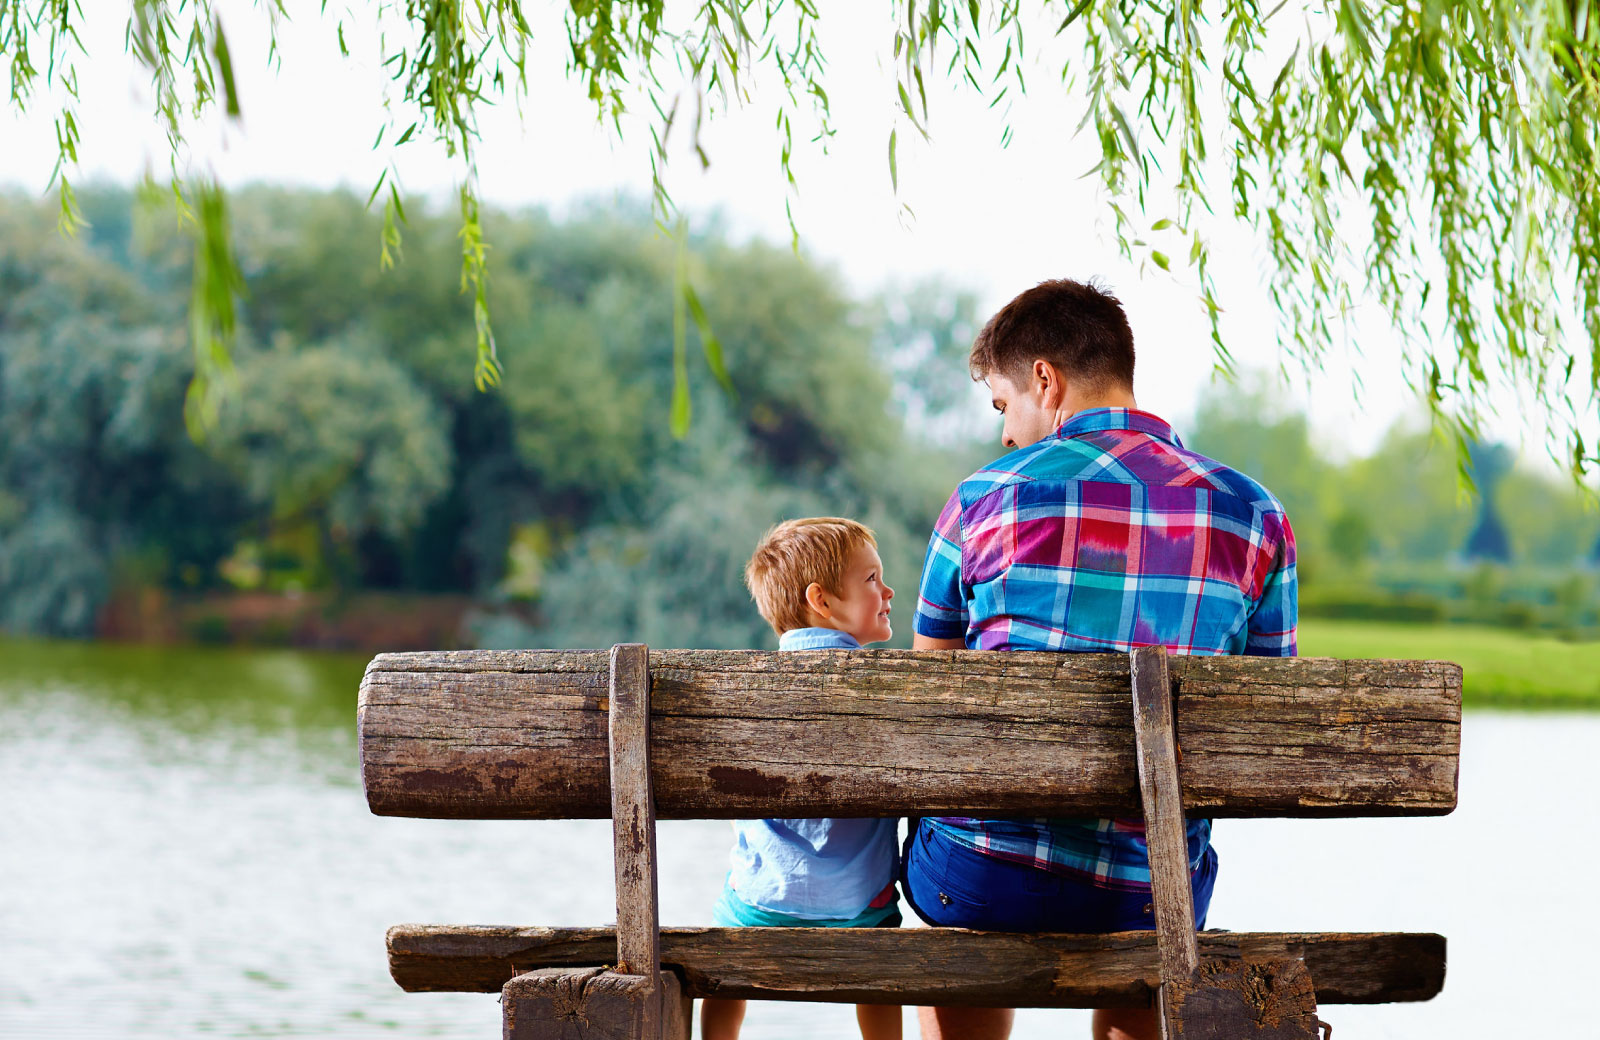 father and son hanging out at the park by the lake